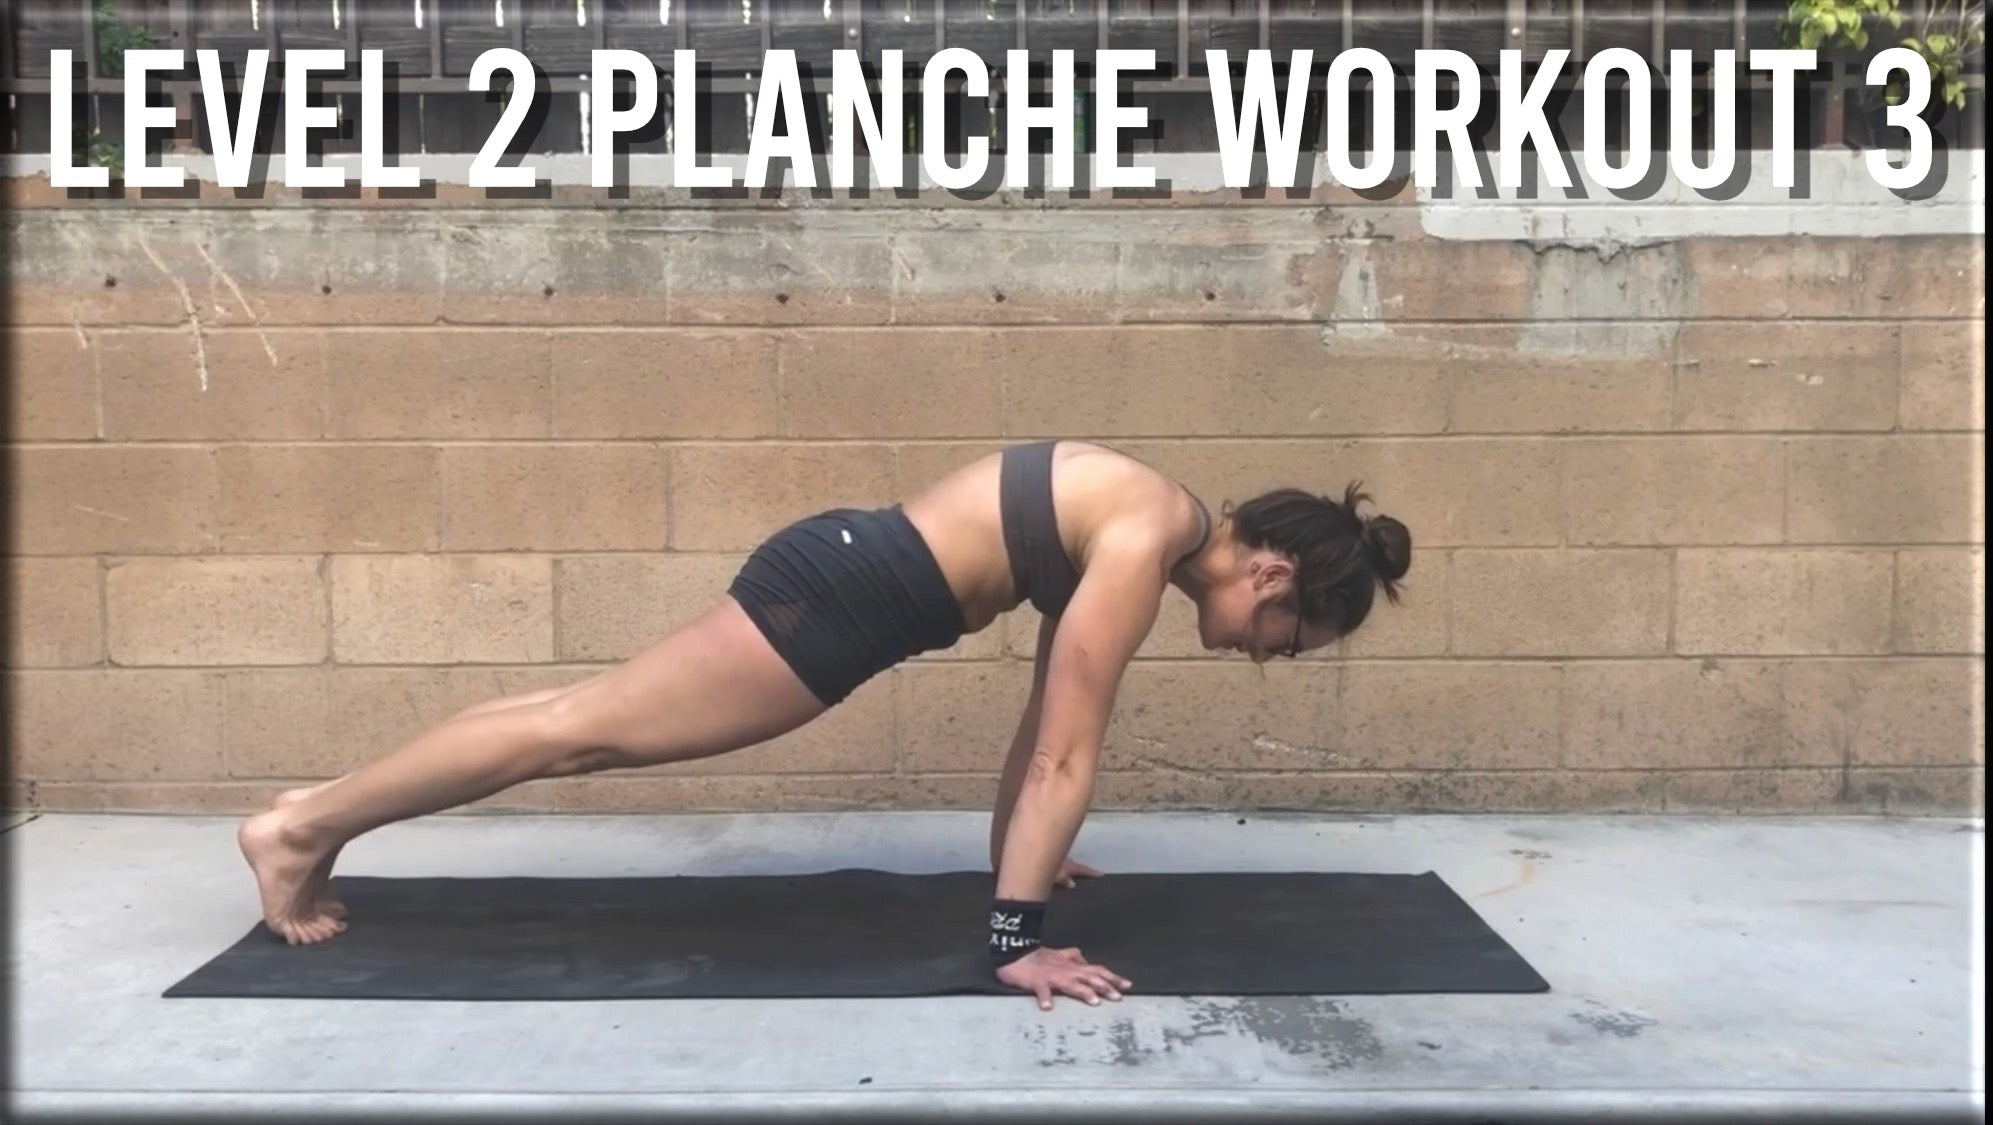 Level 2 Planche Workout 3